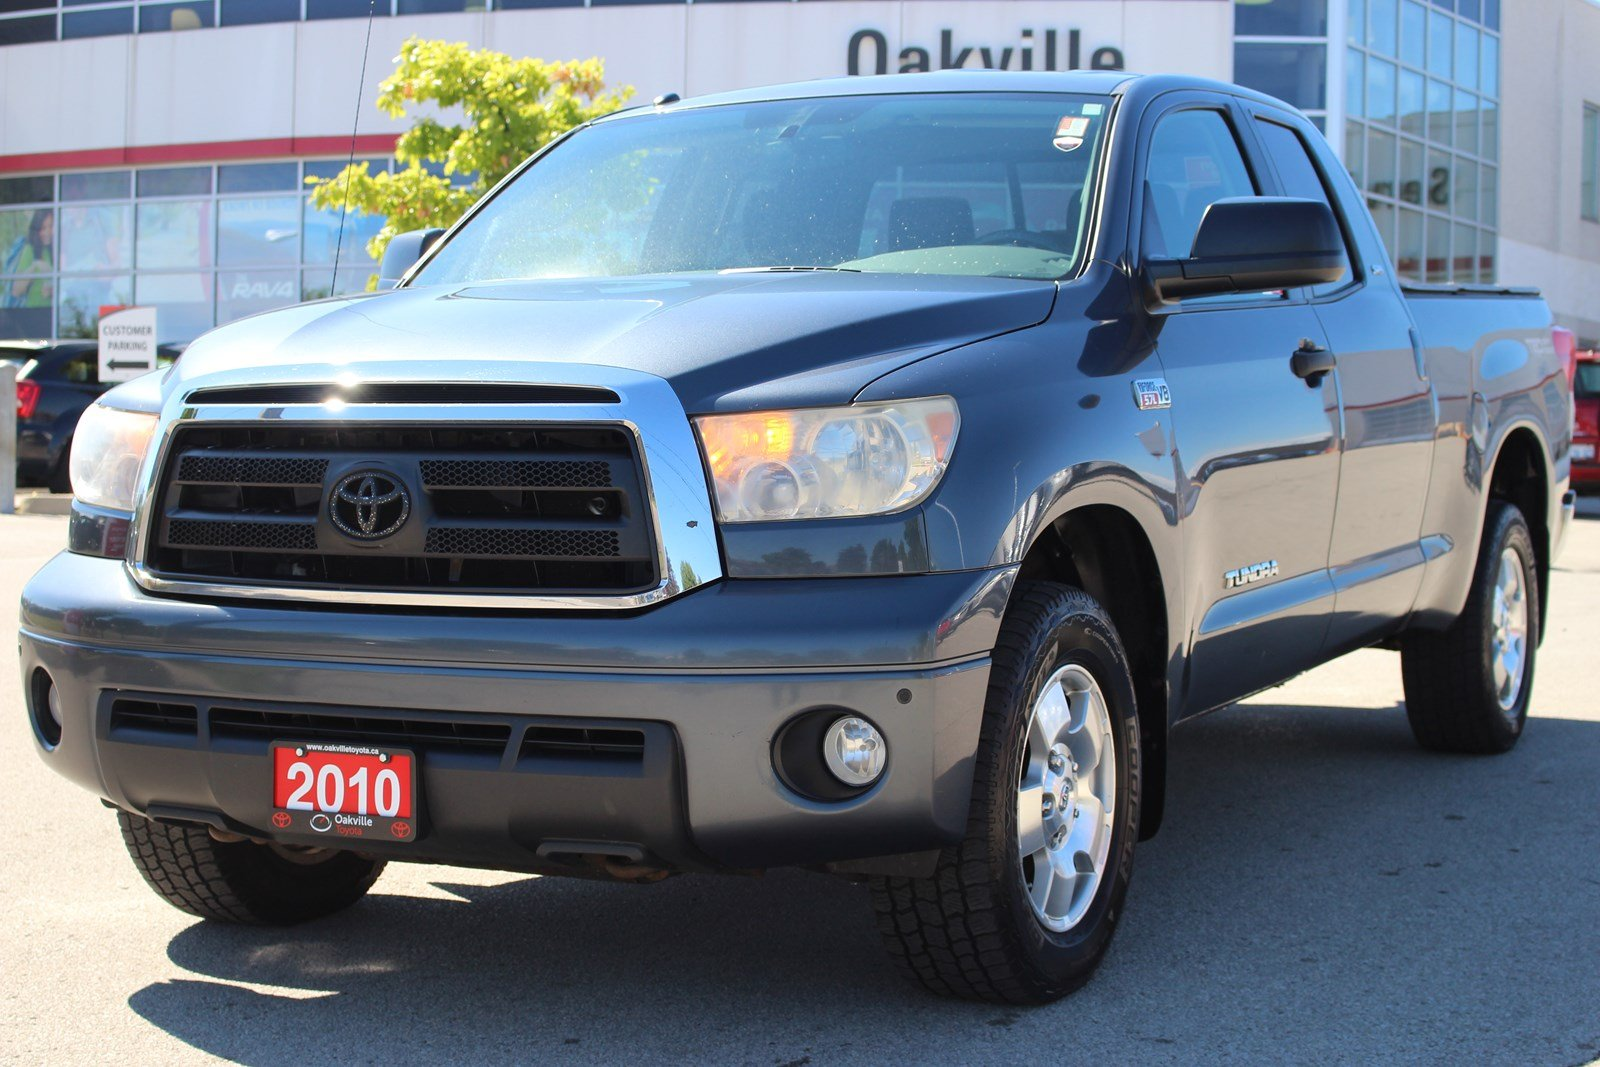 Pre-Owned 2010 Toyota Tundra SR5 with 5.7L Engine and Tow Capacity